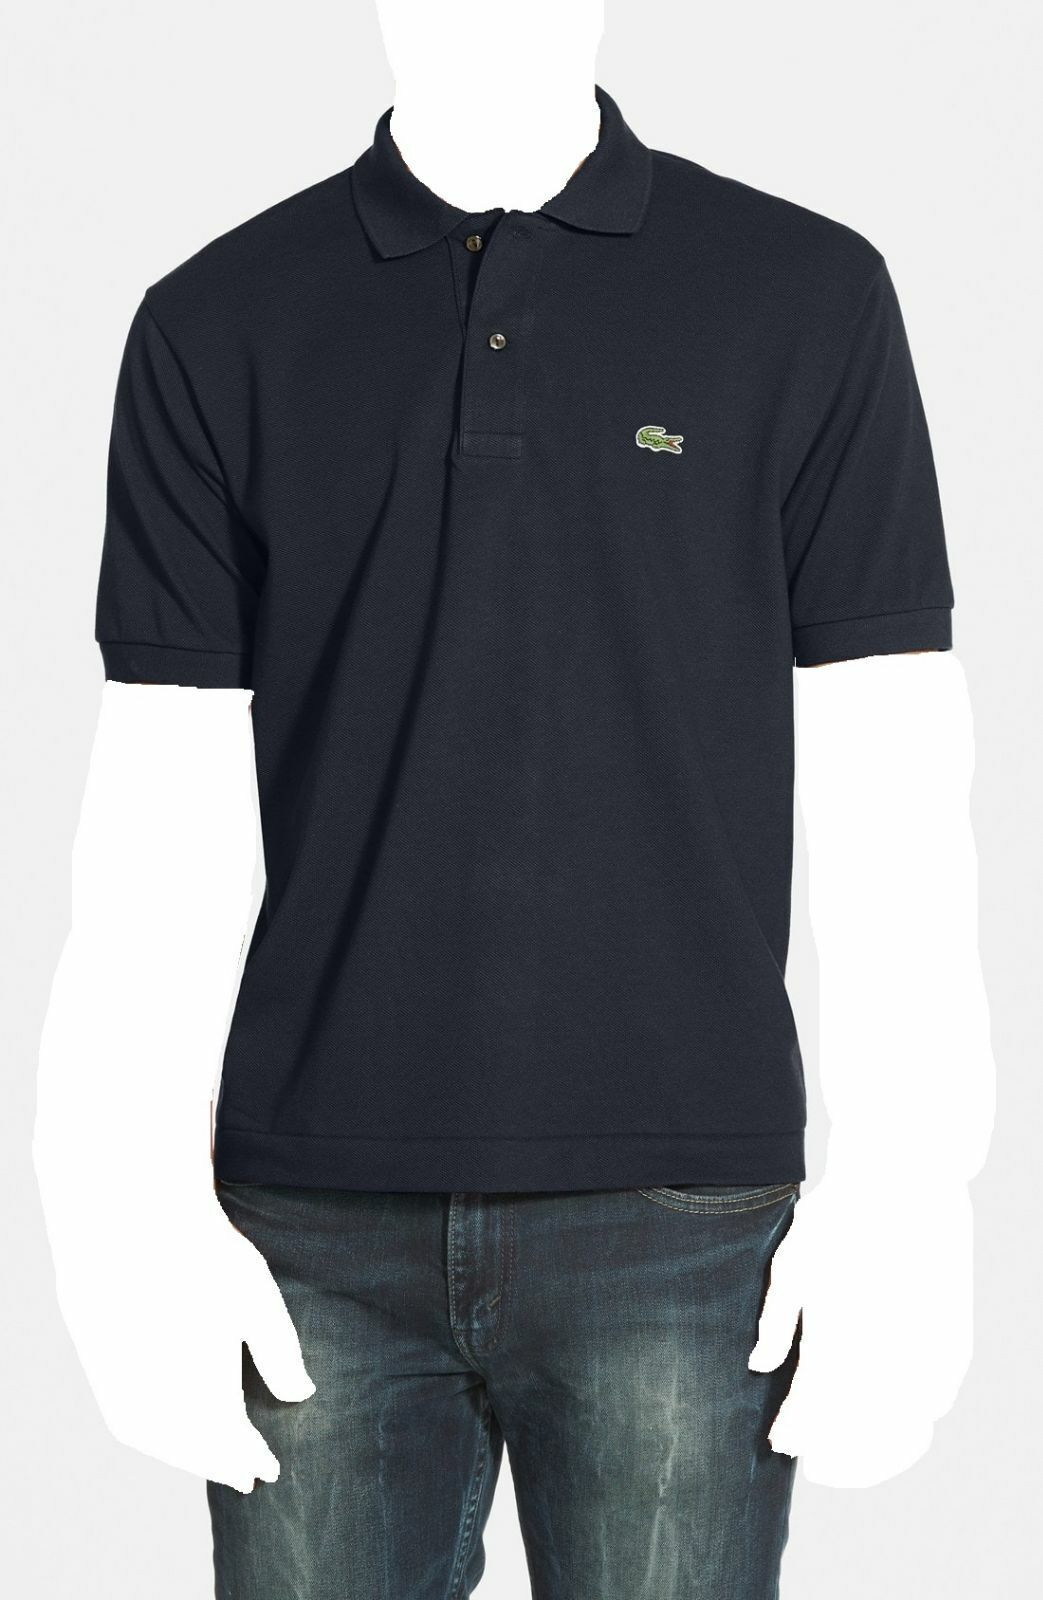 LACOSTE Men's CLASSIC FIT blueE SHORT SLEEVE POLO BUTTON CROC LOGO SHIRT 4 M